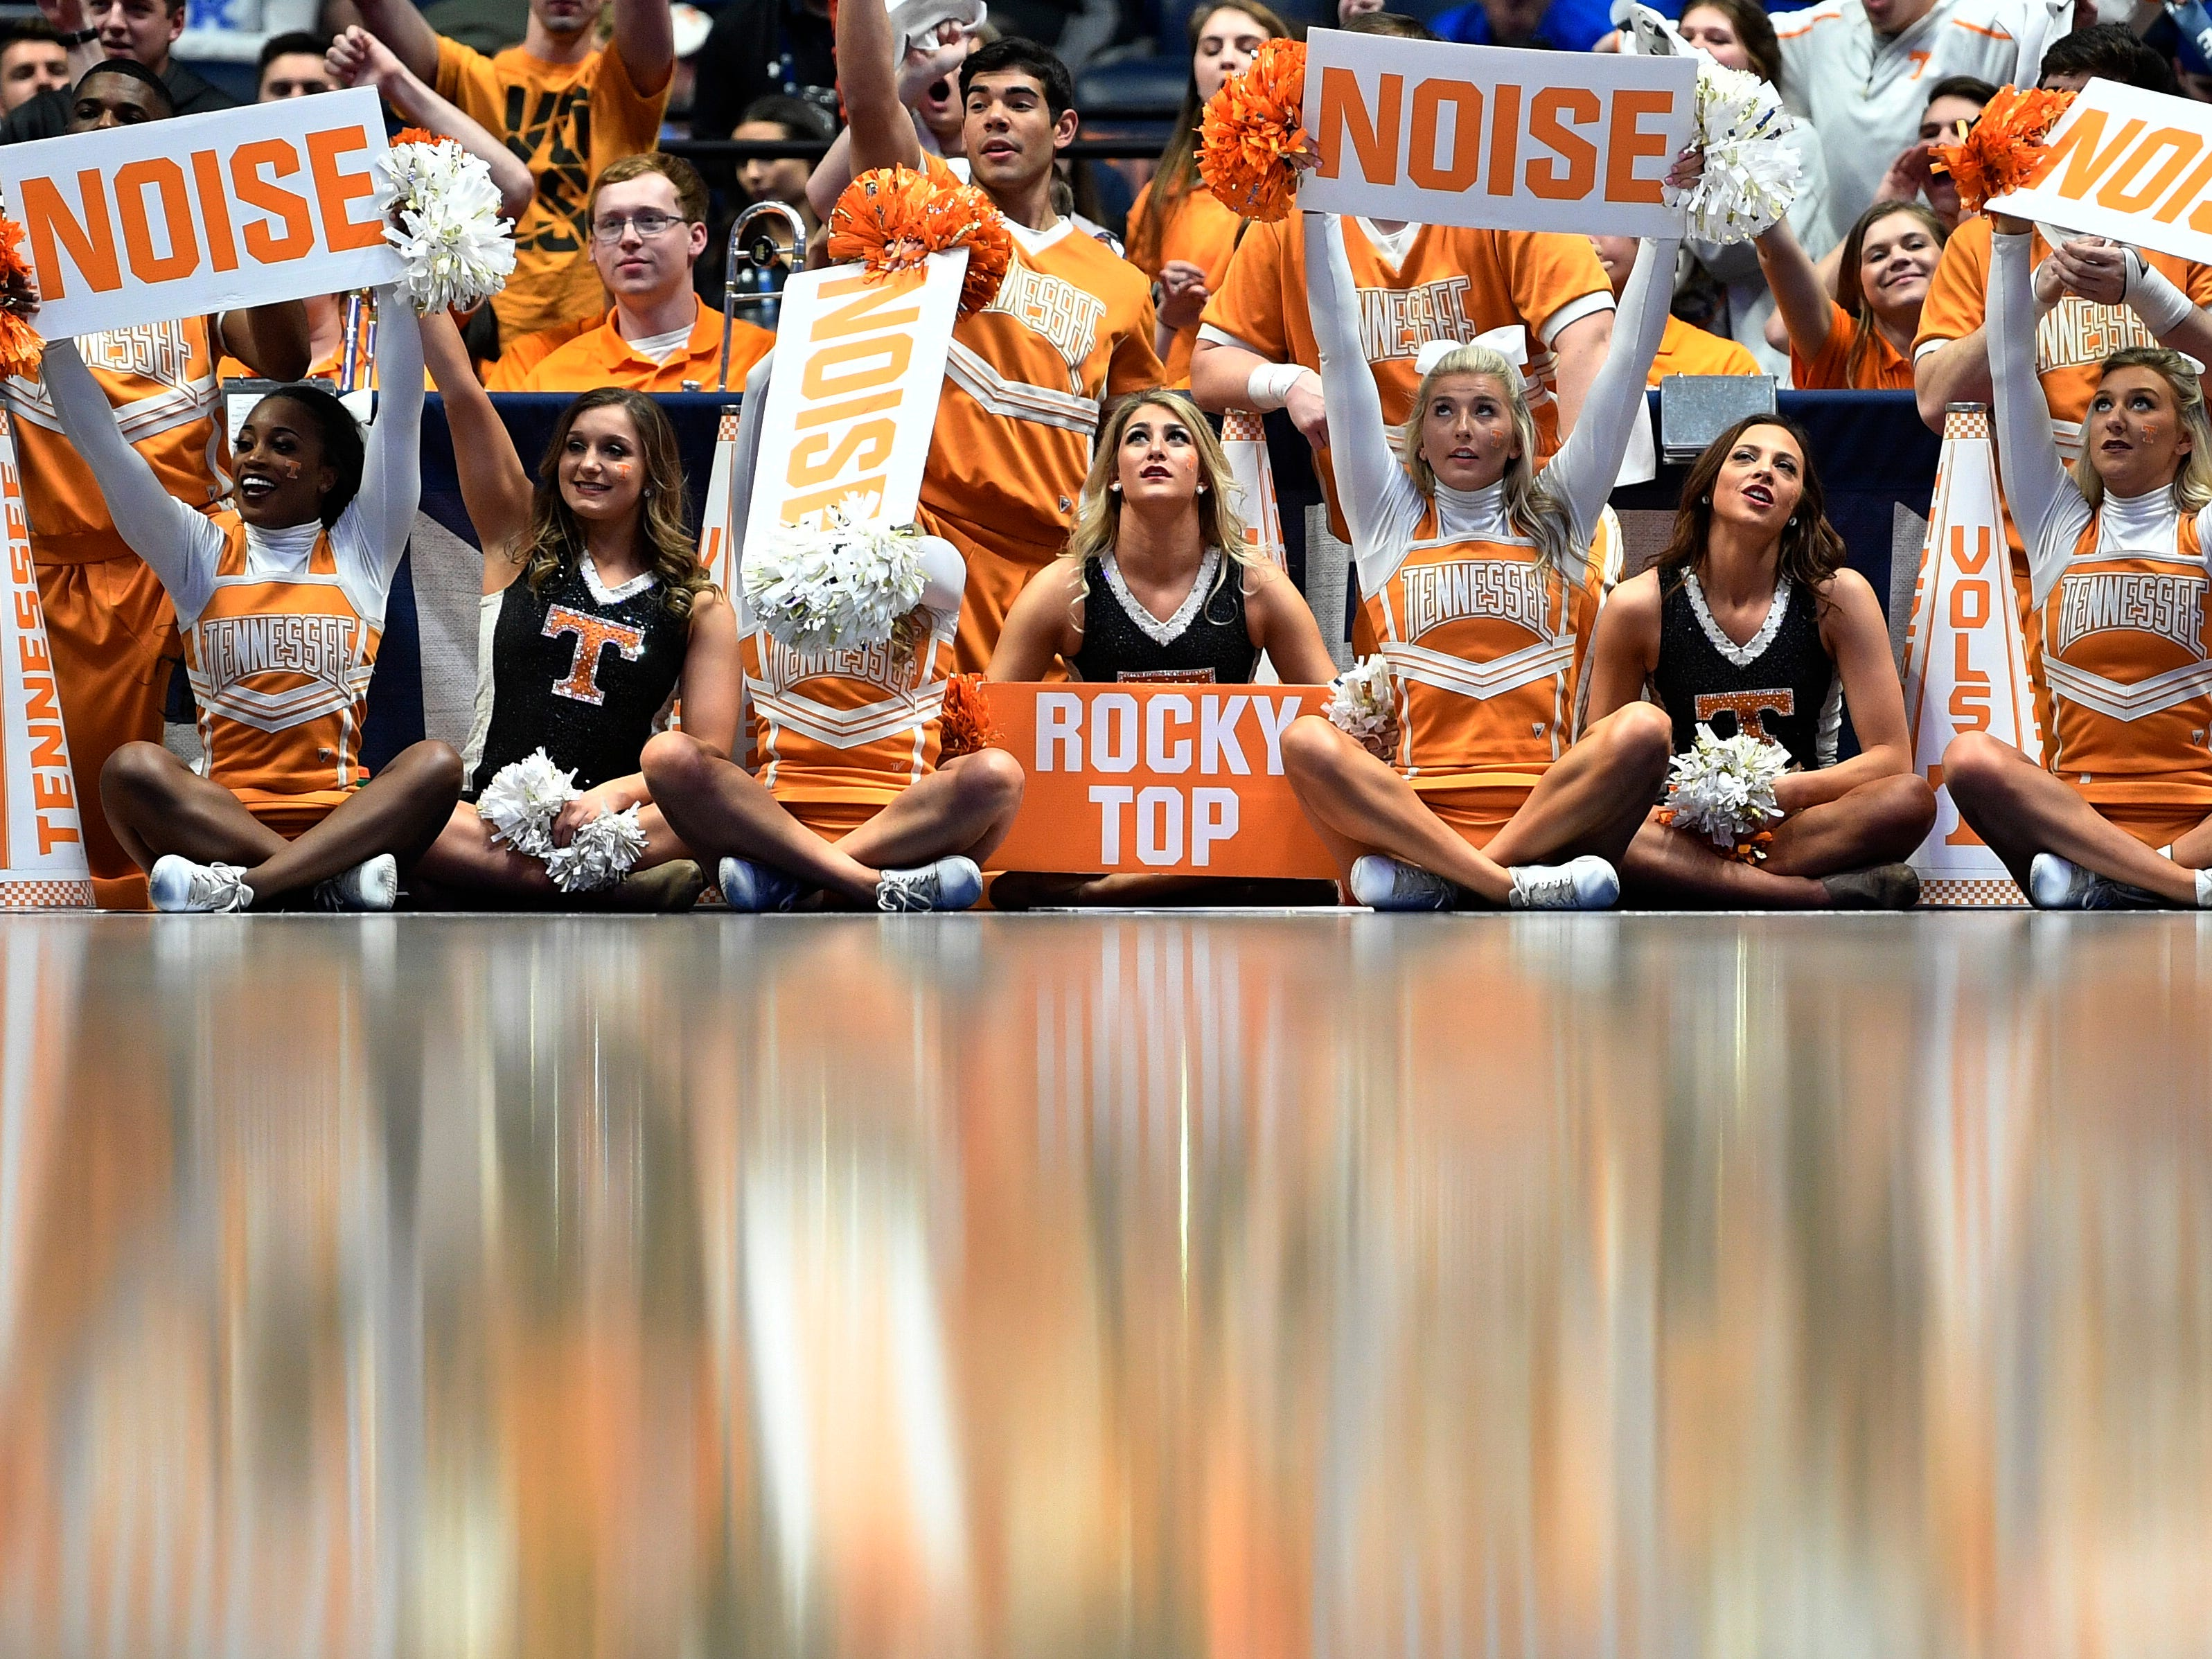 Tennessee cheerleaders lead the fans during the first half of the SEC Men's Basketball Tournament game against Mississippi State at Bridgestone Arena in Nashville, Tenn., Friday, March 15, 2019.